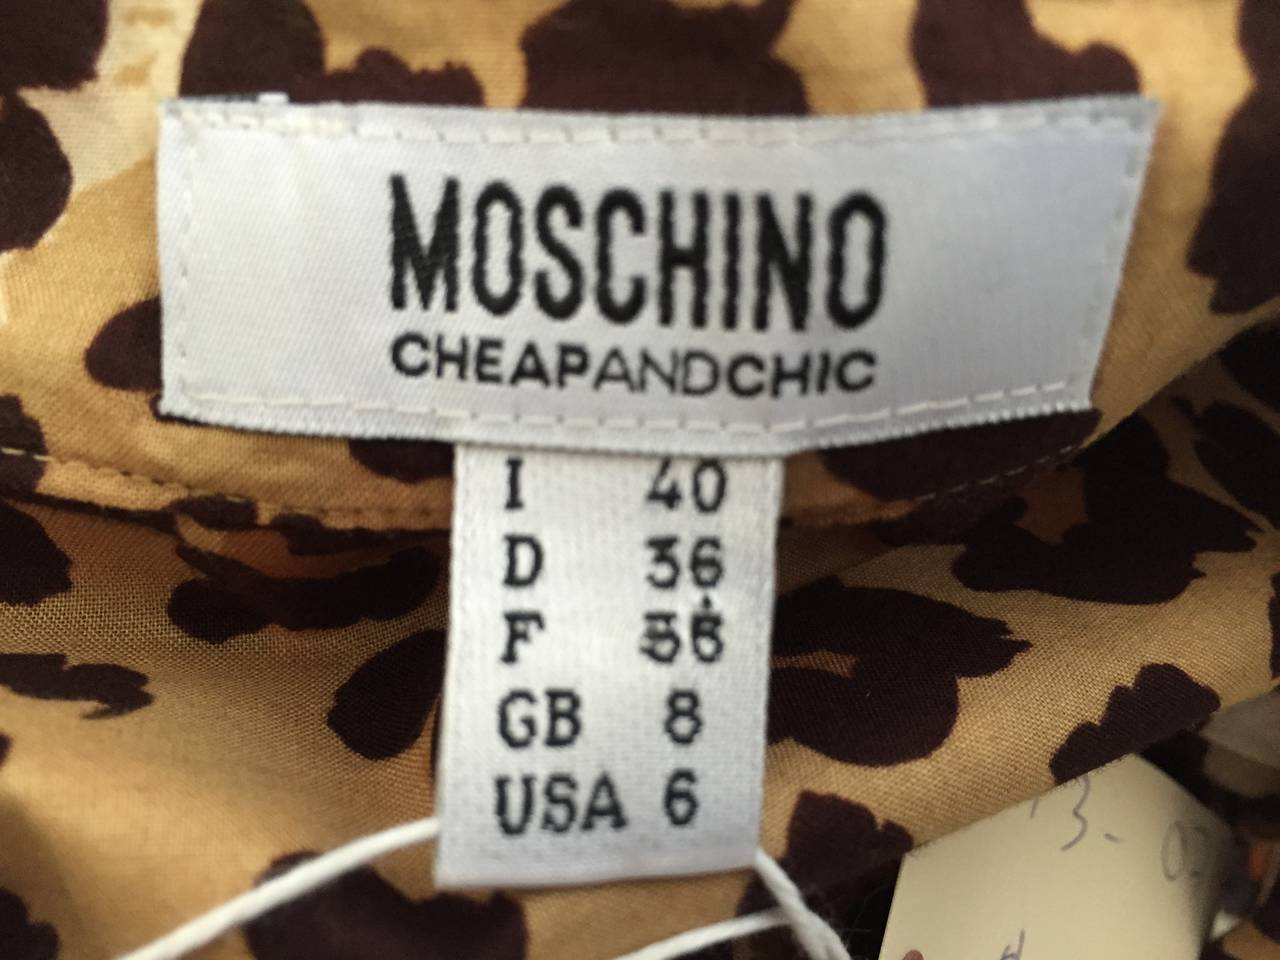 Moschino cheetah print dress with pockets size 6. 9